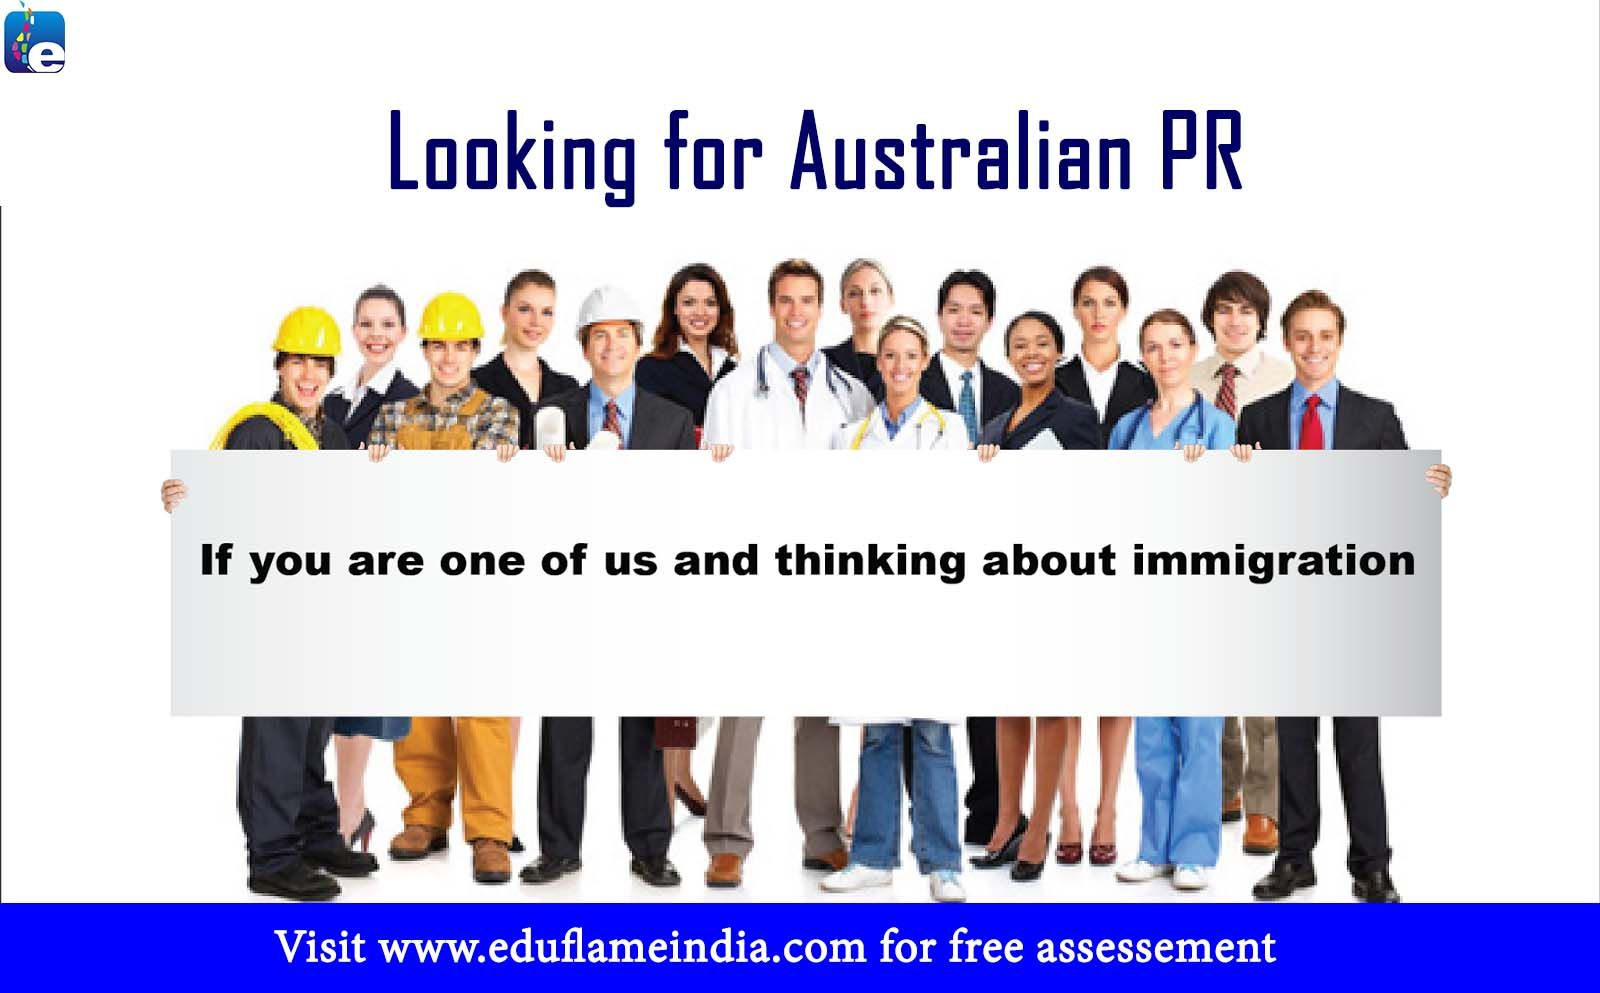 Looking for AustralianPR Pathways to